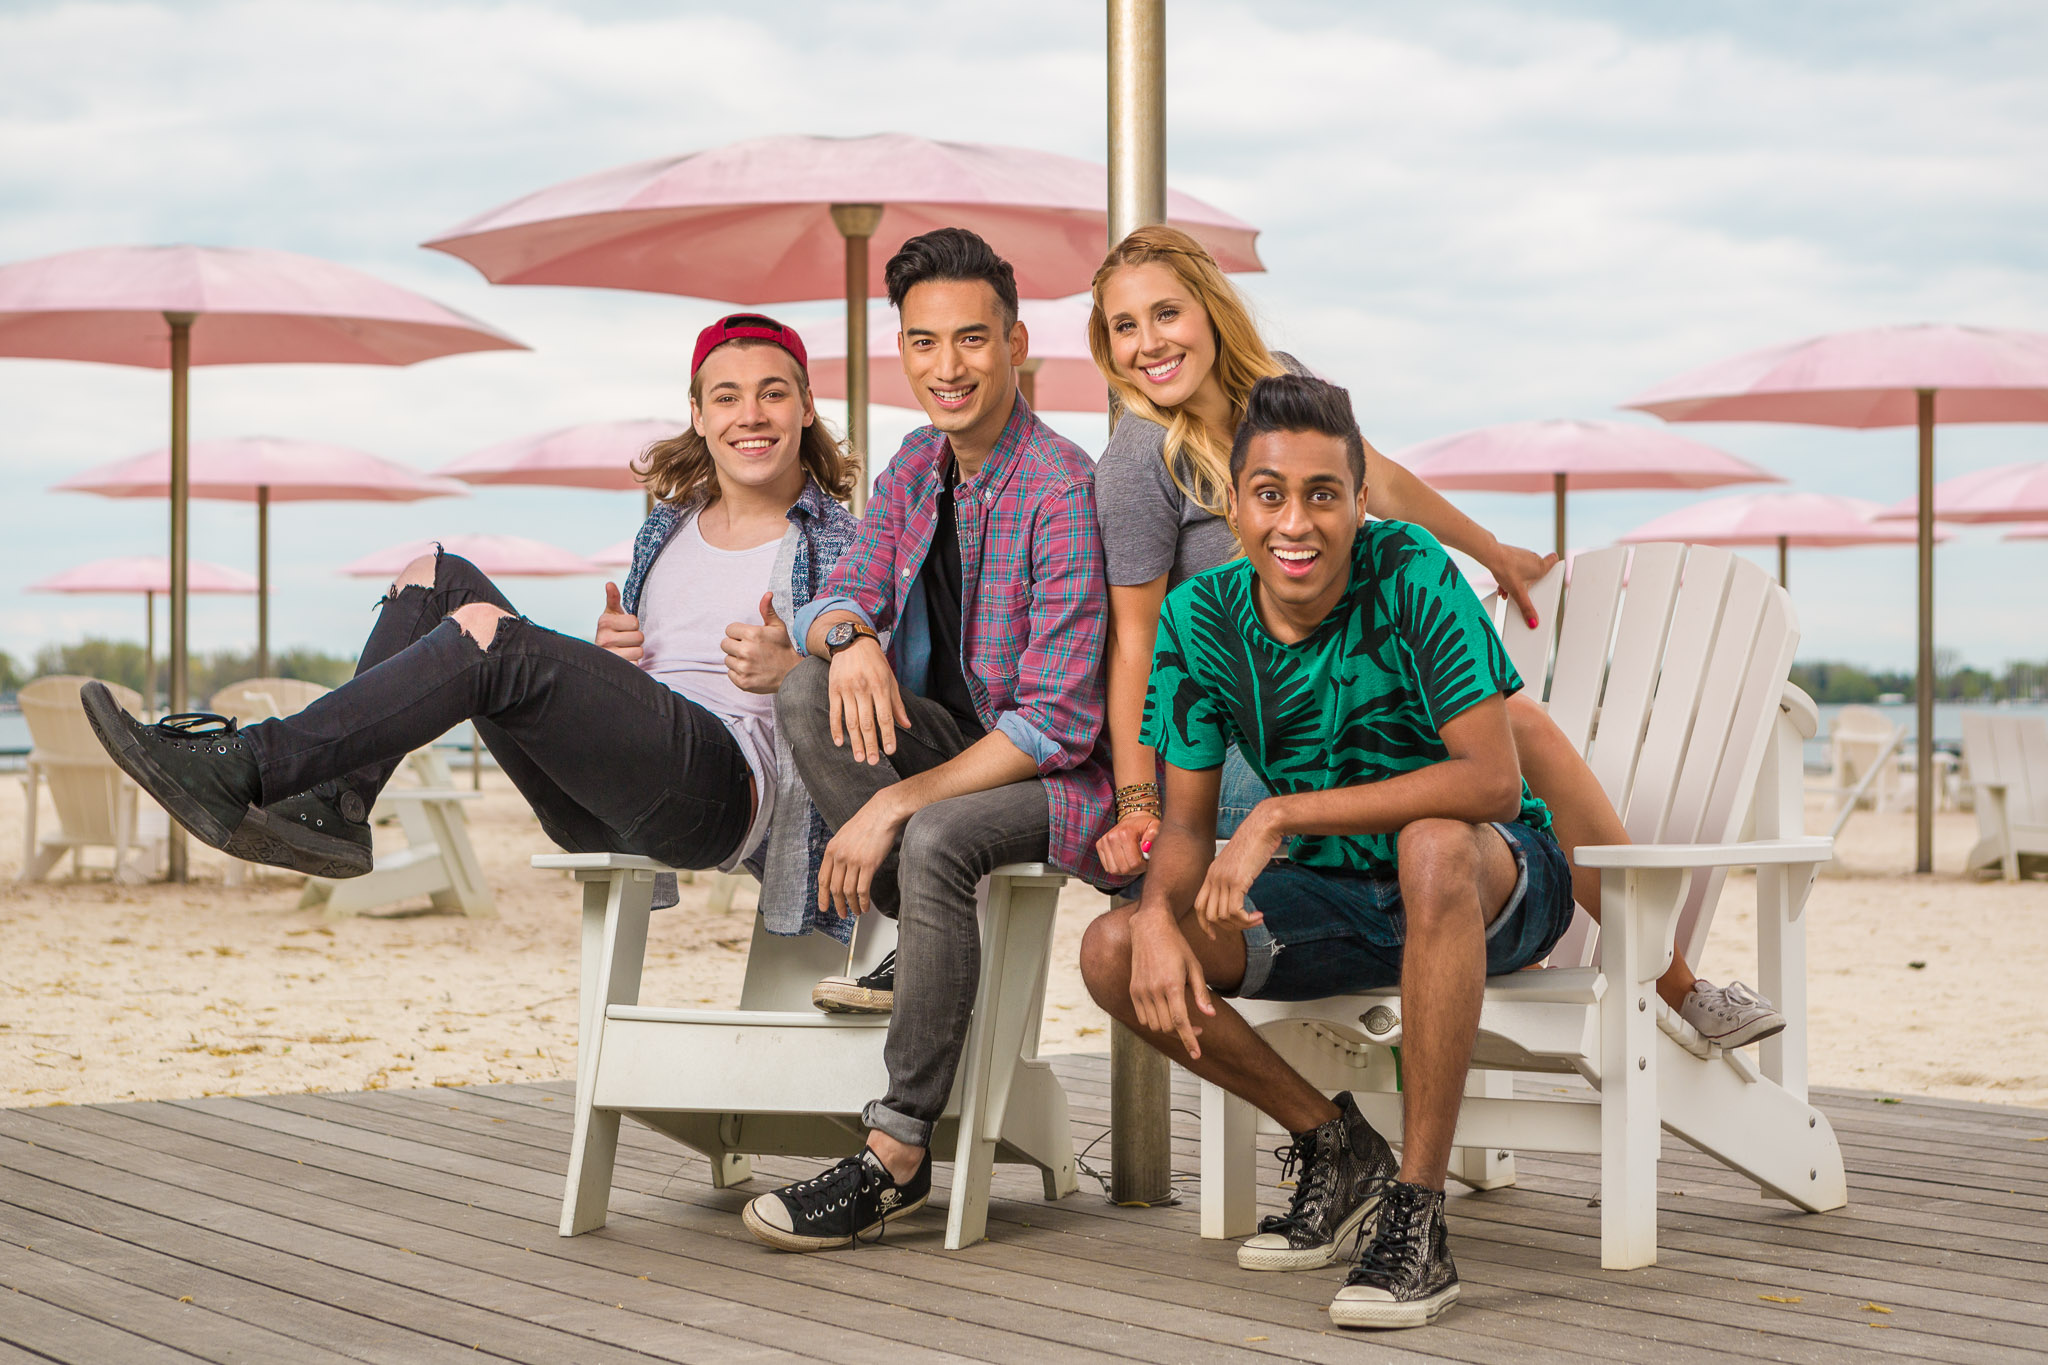 ytv-sugar-beach-summer-road-trip-2015-toronto-photographer-shayne-gray